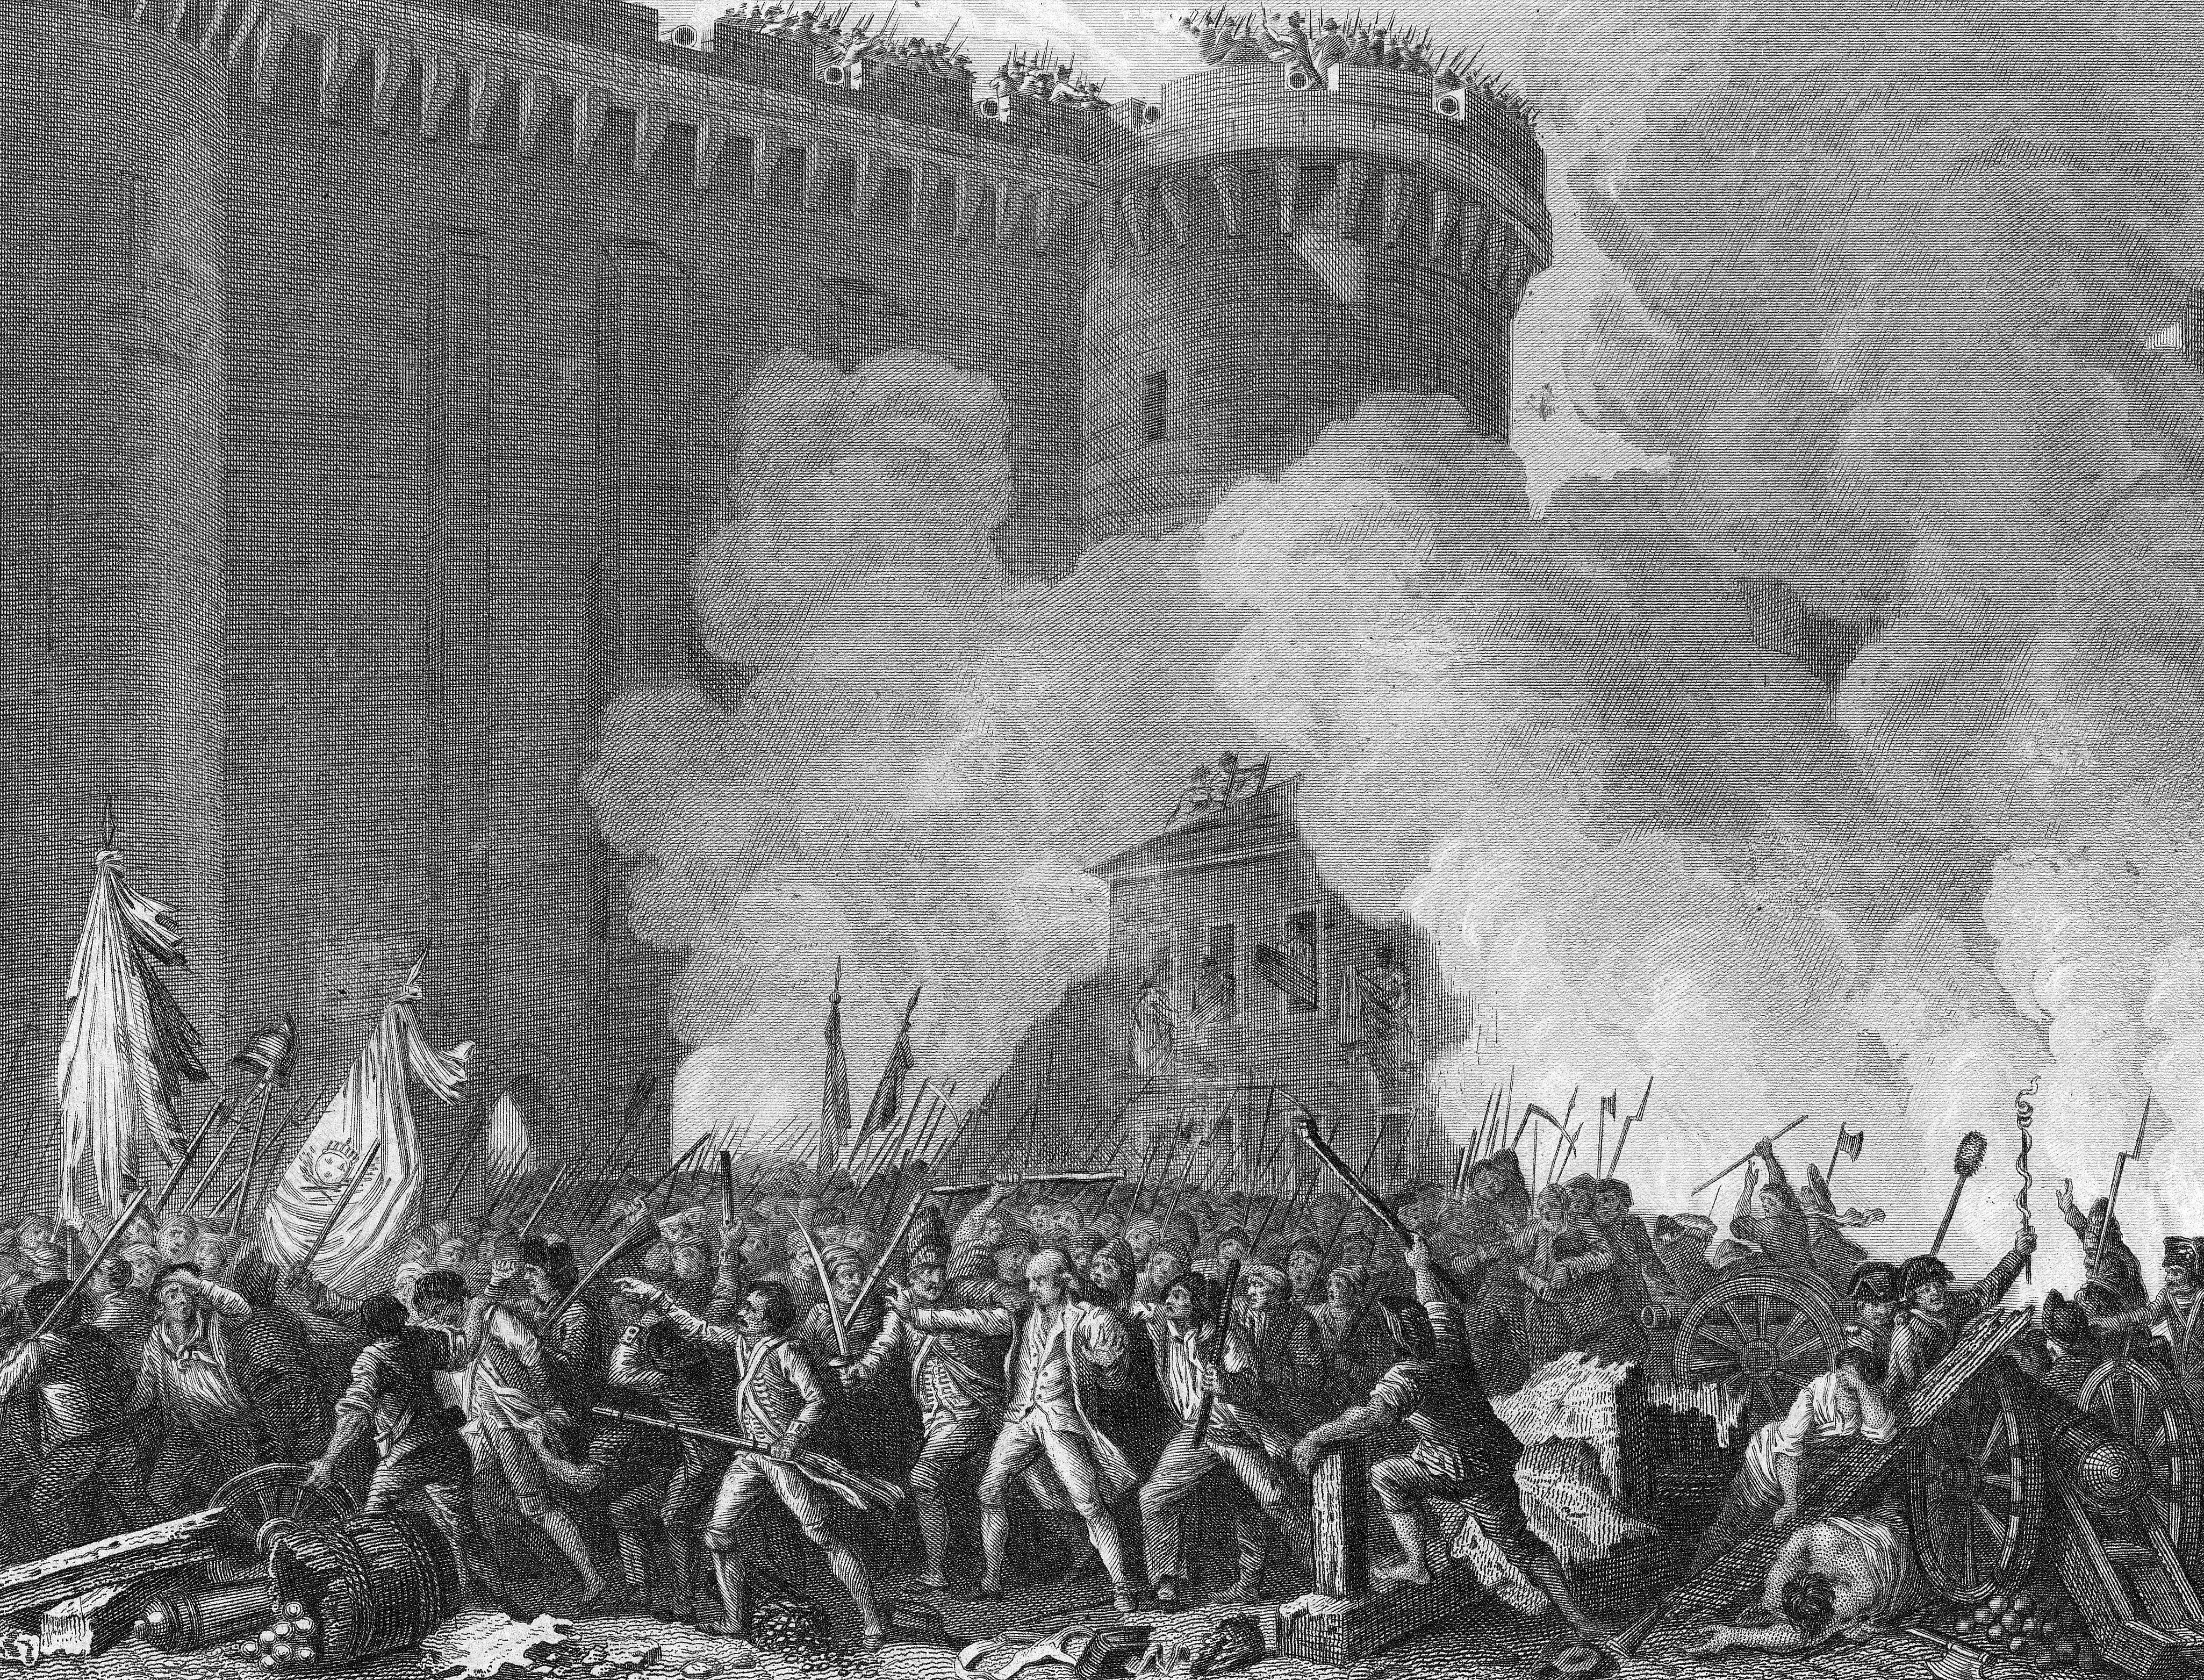 The mass attack on the Bastille fortress ignites the French Revolution.